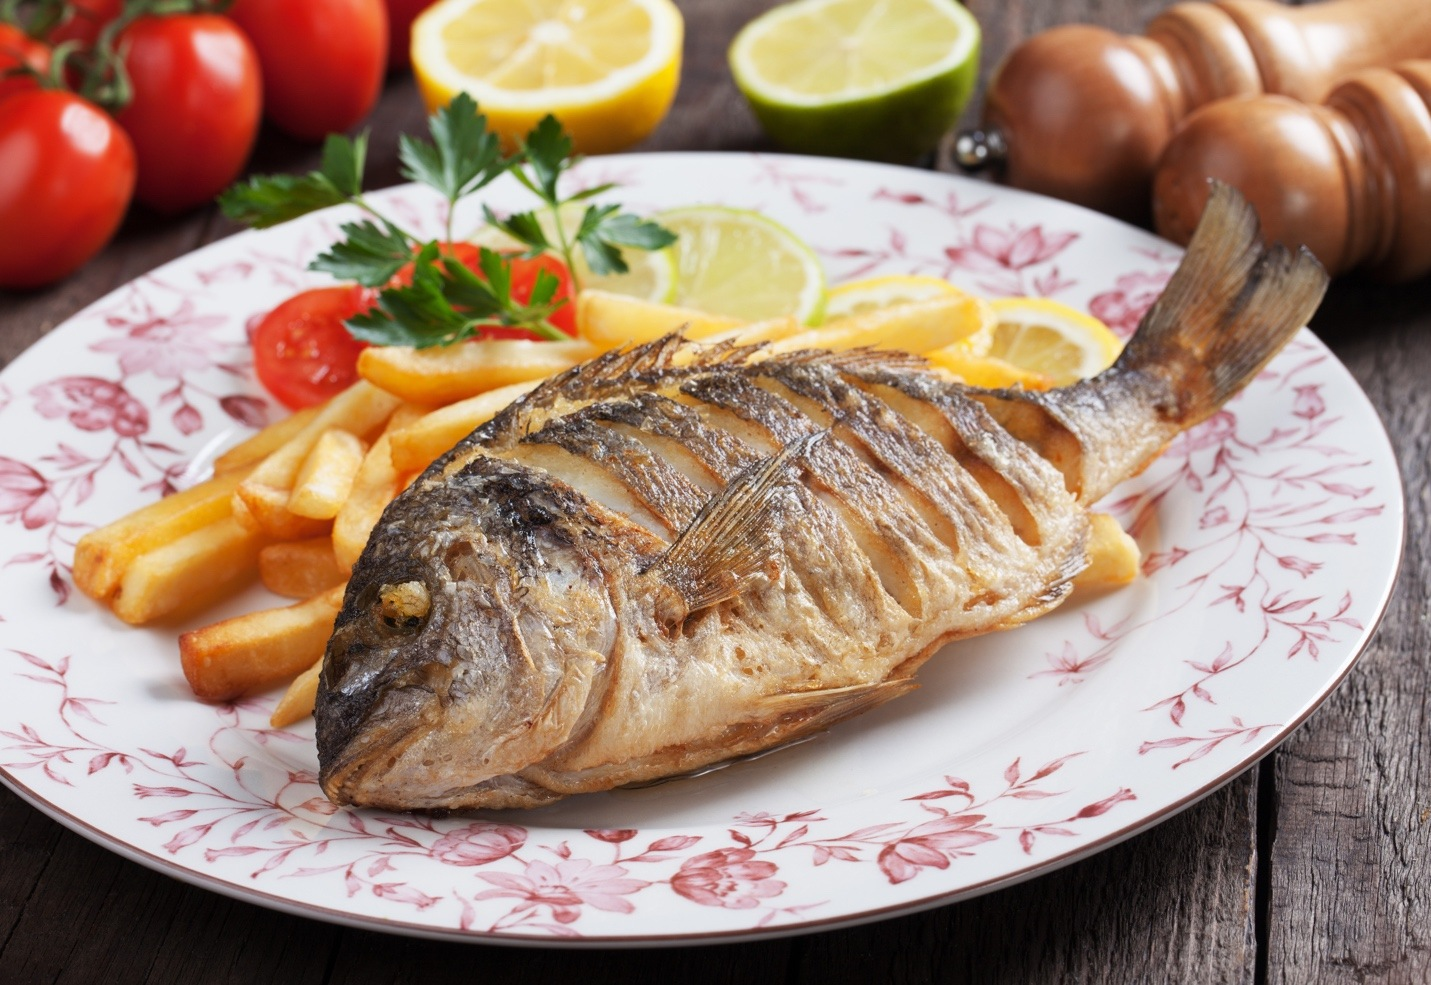 fish - Top 20 Natural Foods To Help You Manage Your Diabetes Effectively